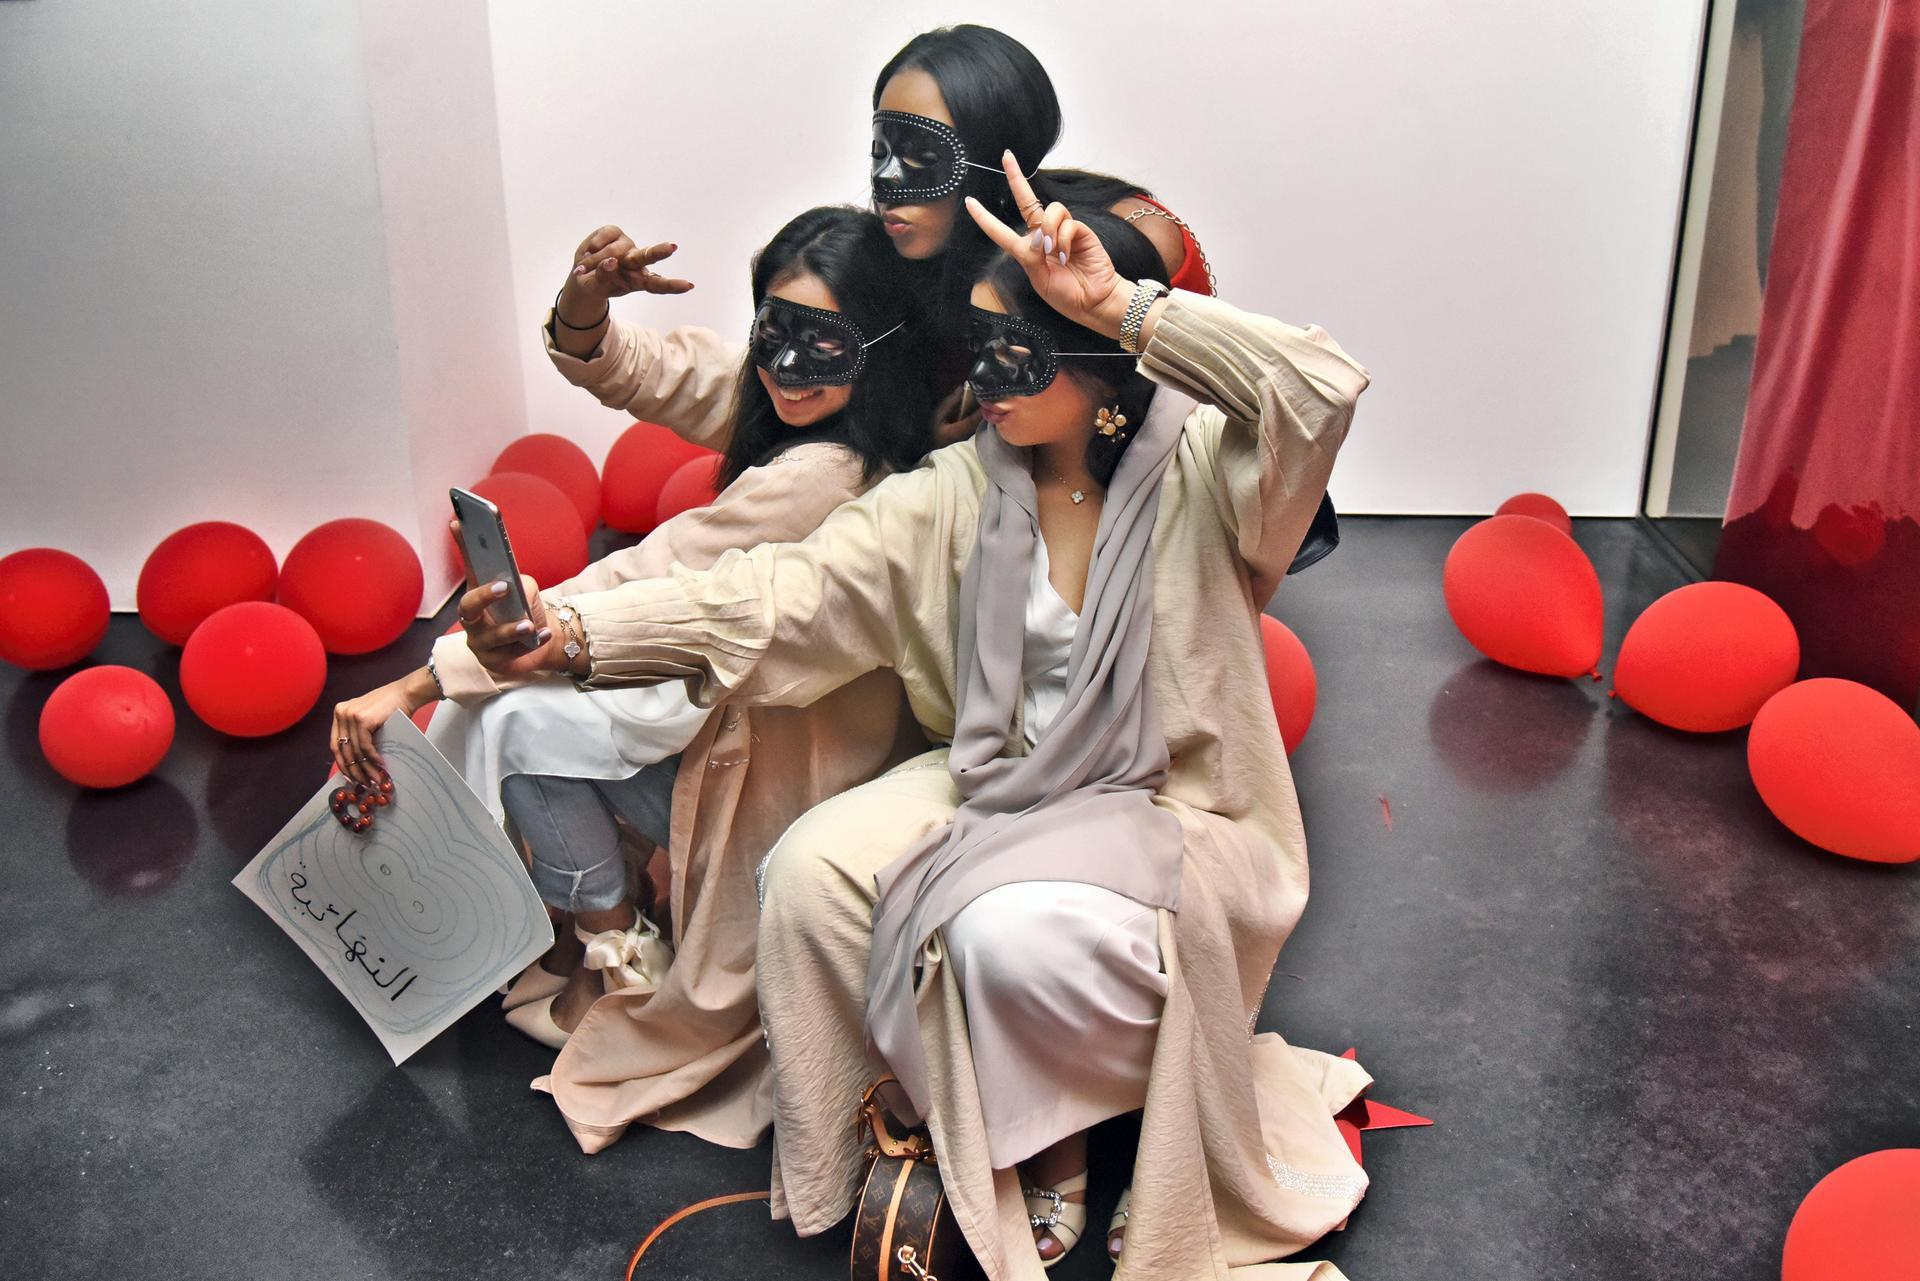 The Jameel Arts Centre engaged the young community in Dubai and gave them full control of the centre. Photo credit: Shruti Jan for The National